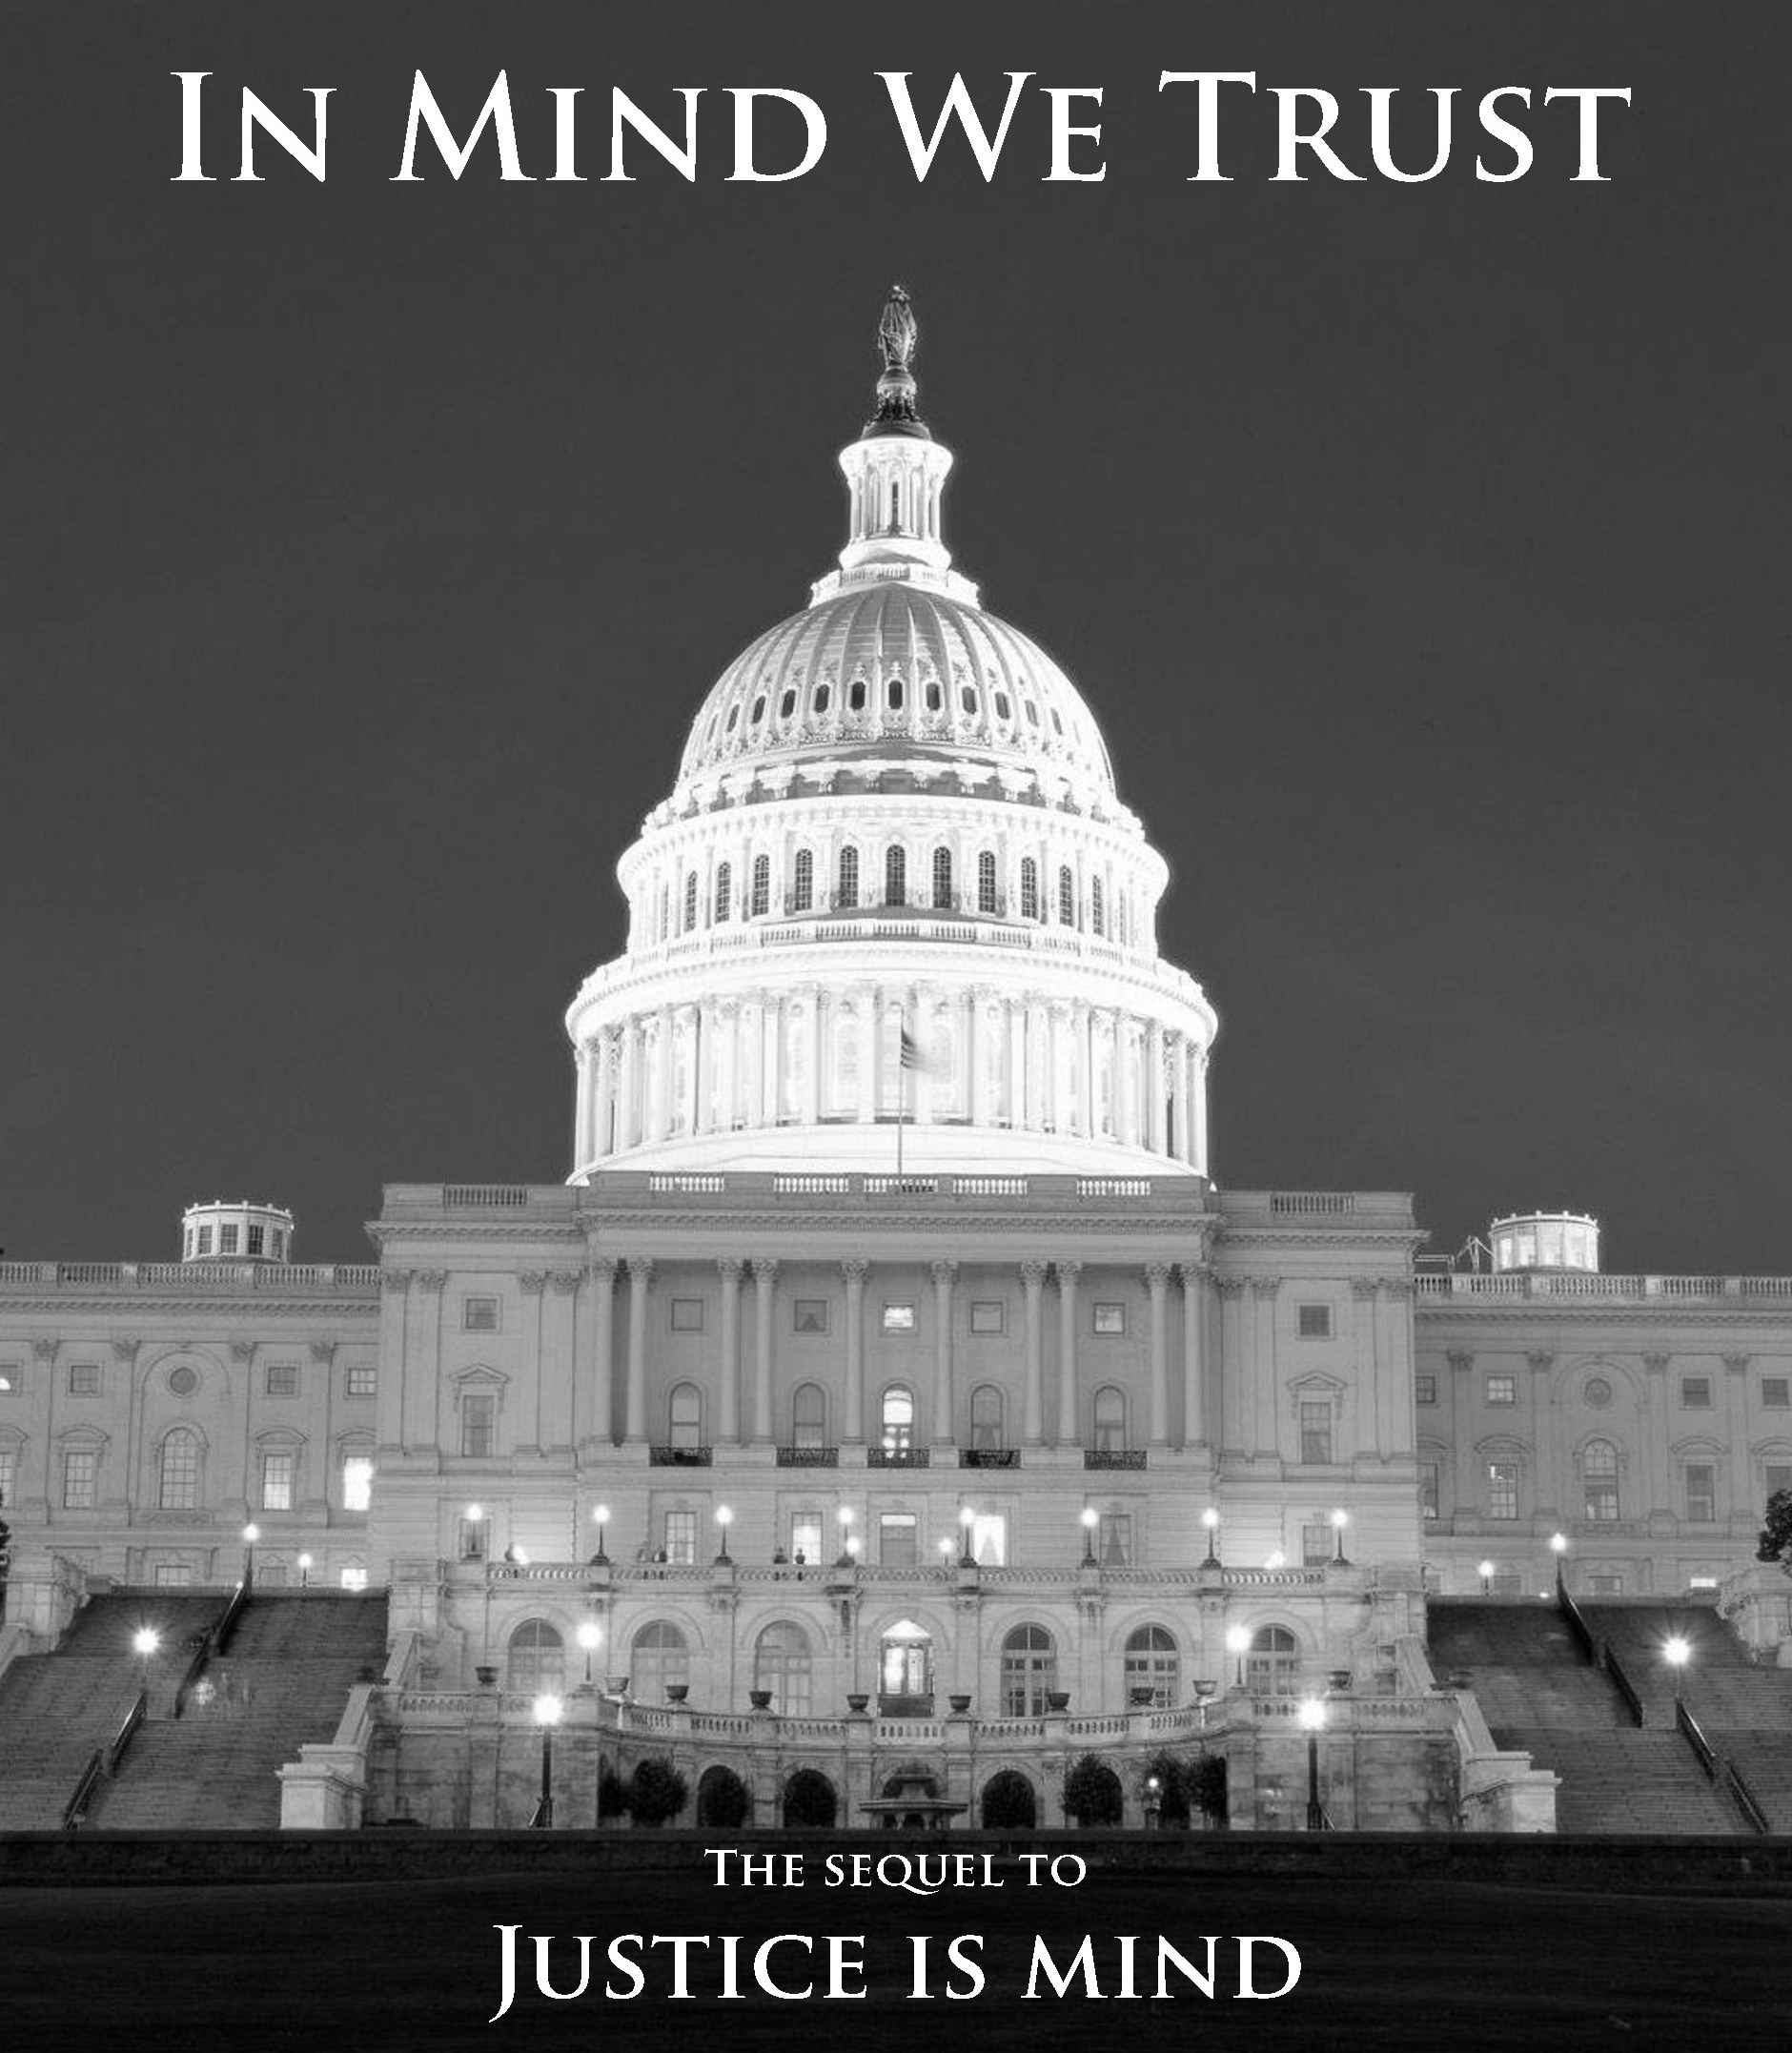 The business plan for In Mind We Trust is nearly complete.